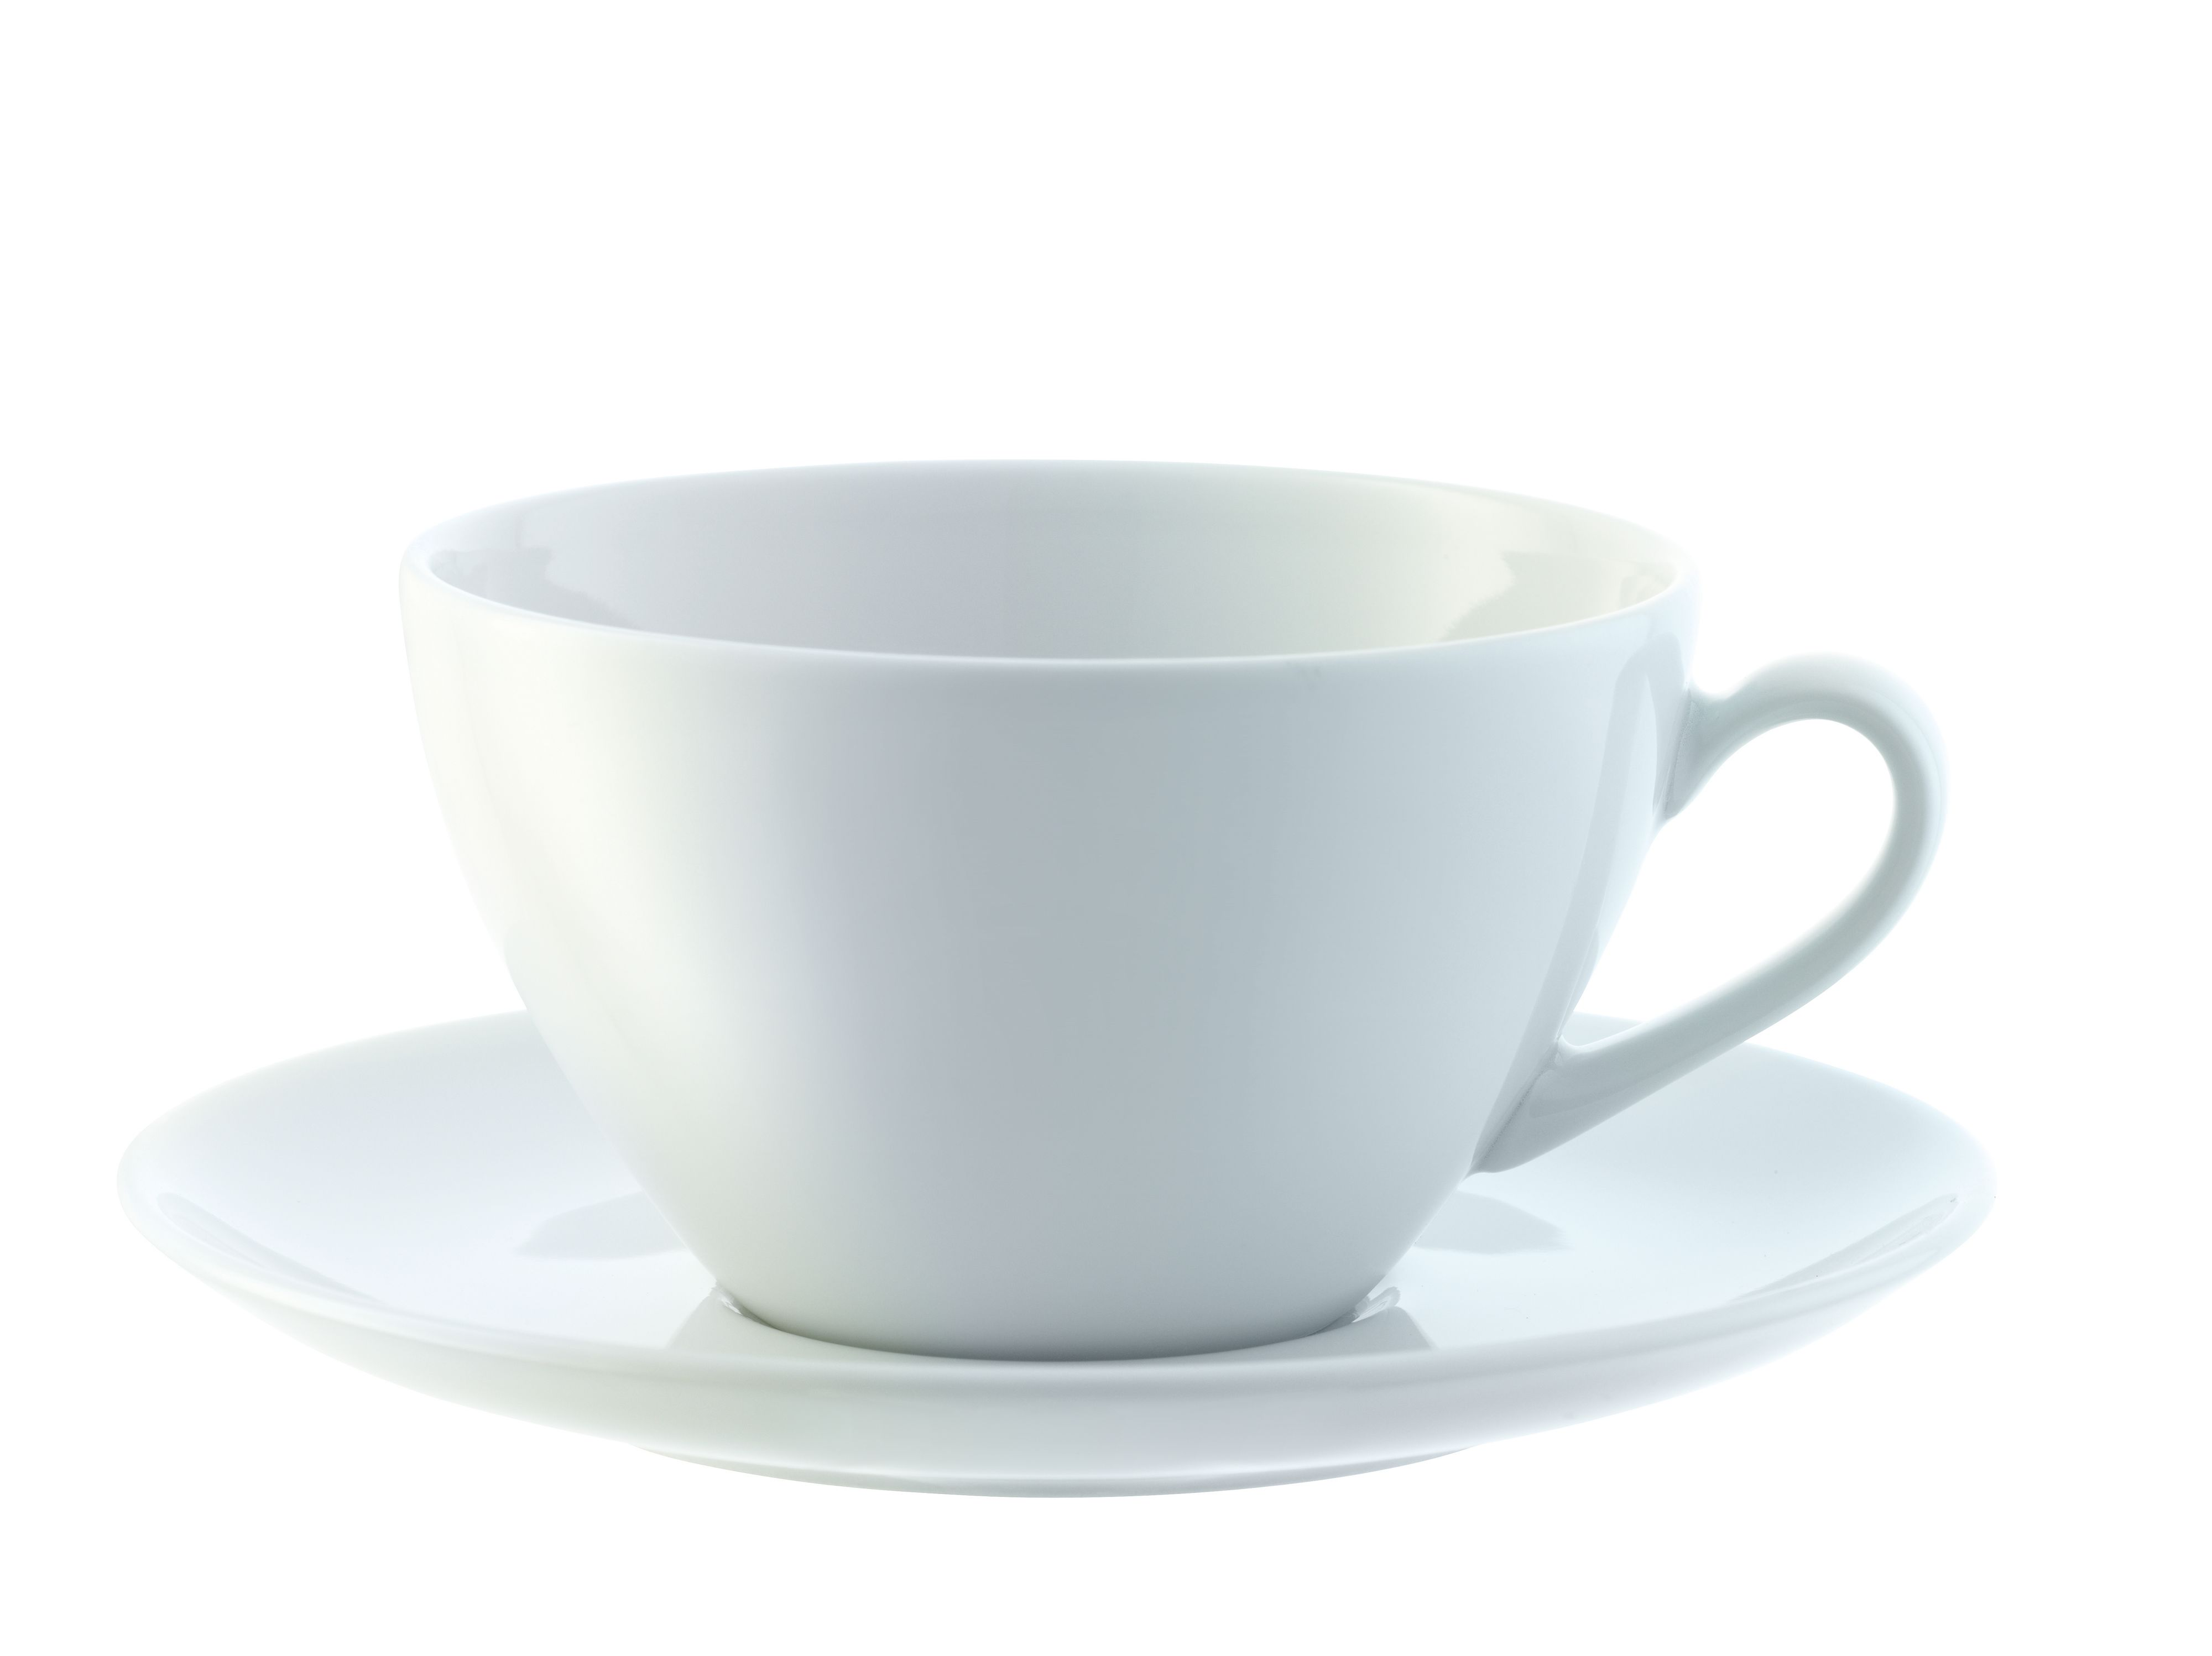 Dine Cappuccino Cup & Saucer Curved, set of 4